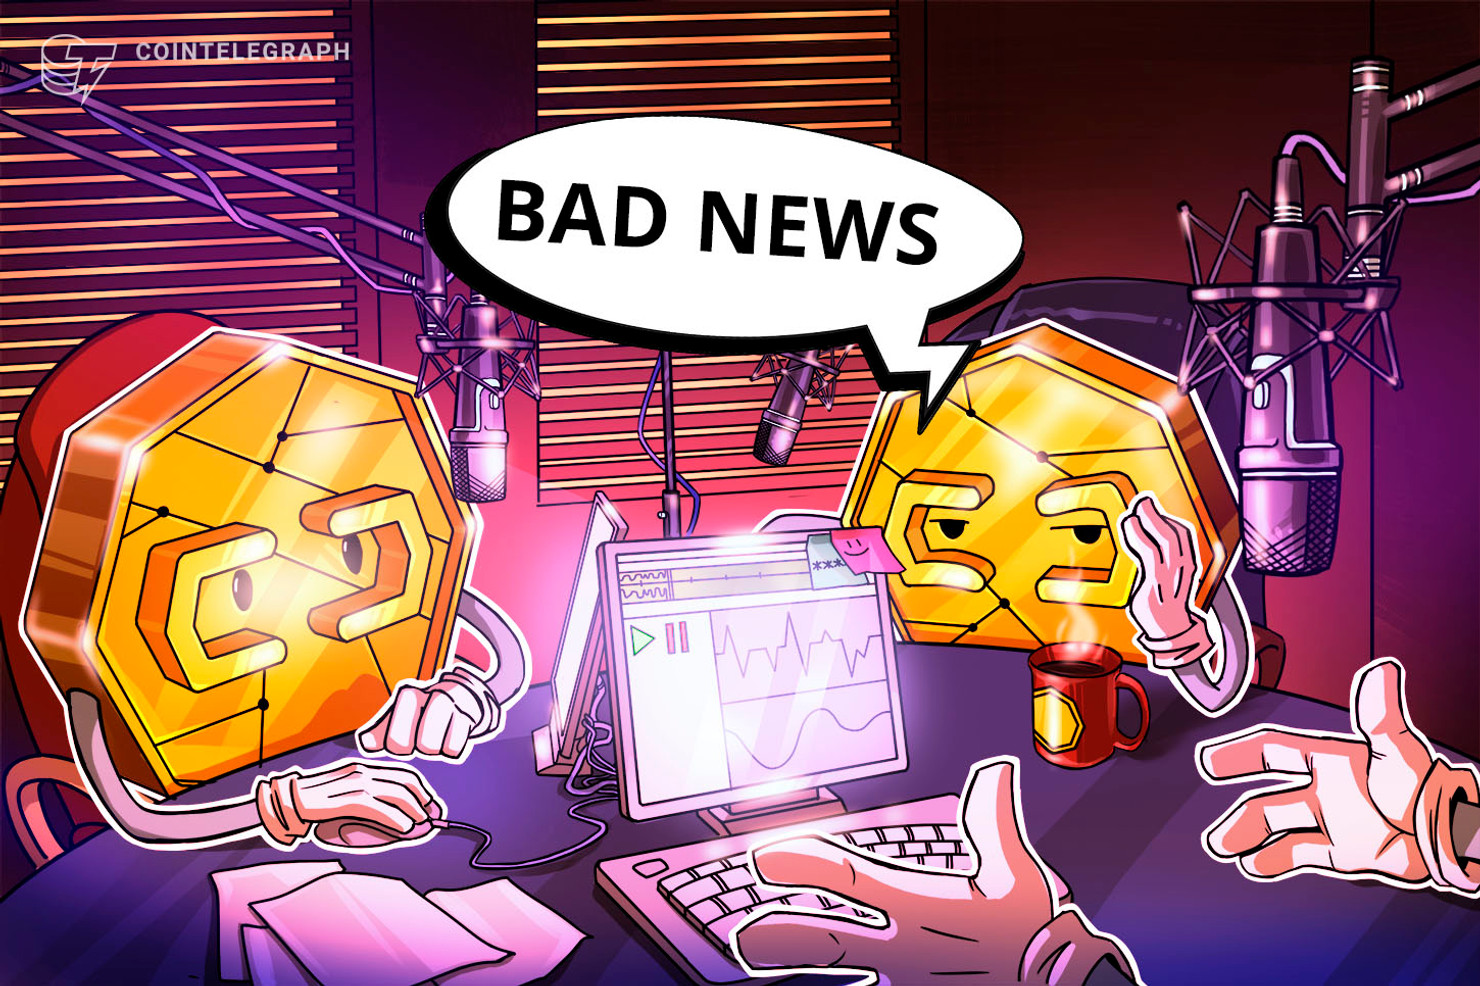 Chinese Censorship, Falling Prices, Illegal Mining & More: Bad Crypto News of the Week